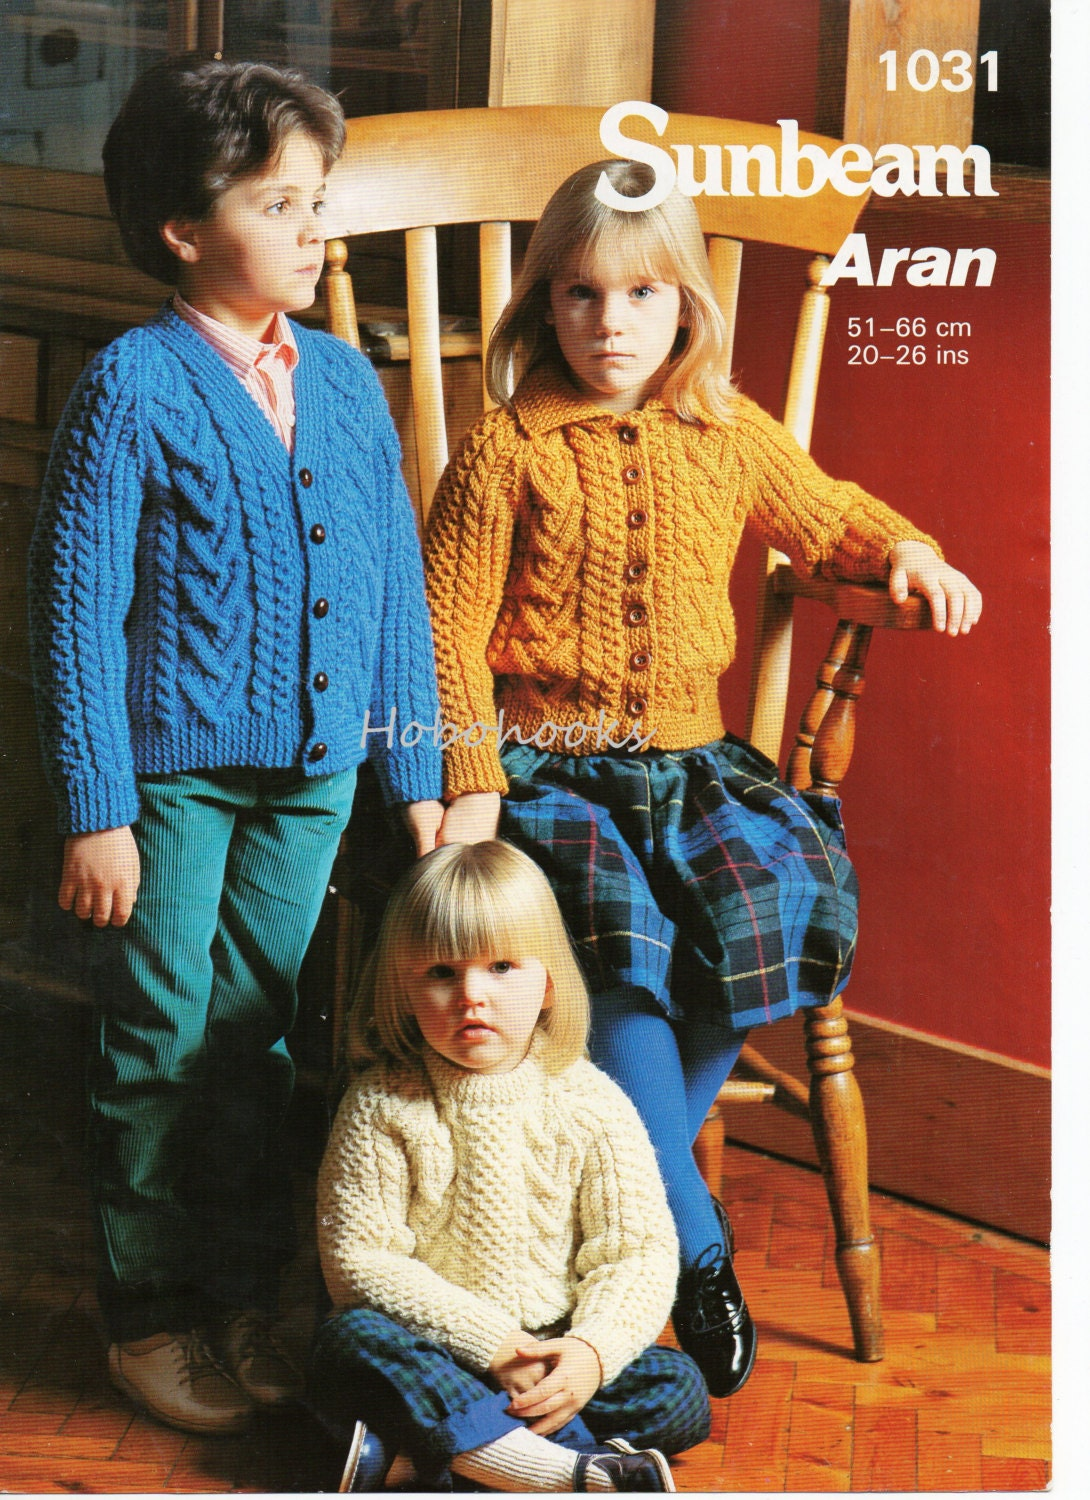 baby Childs childrens aran cardigans sweater knitting pattern PDF cable jackets jumper 2026inch Aran worsted 10ply pdf instant download